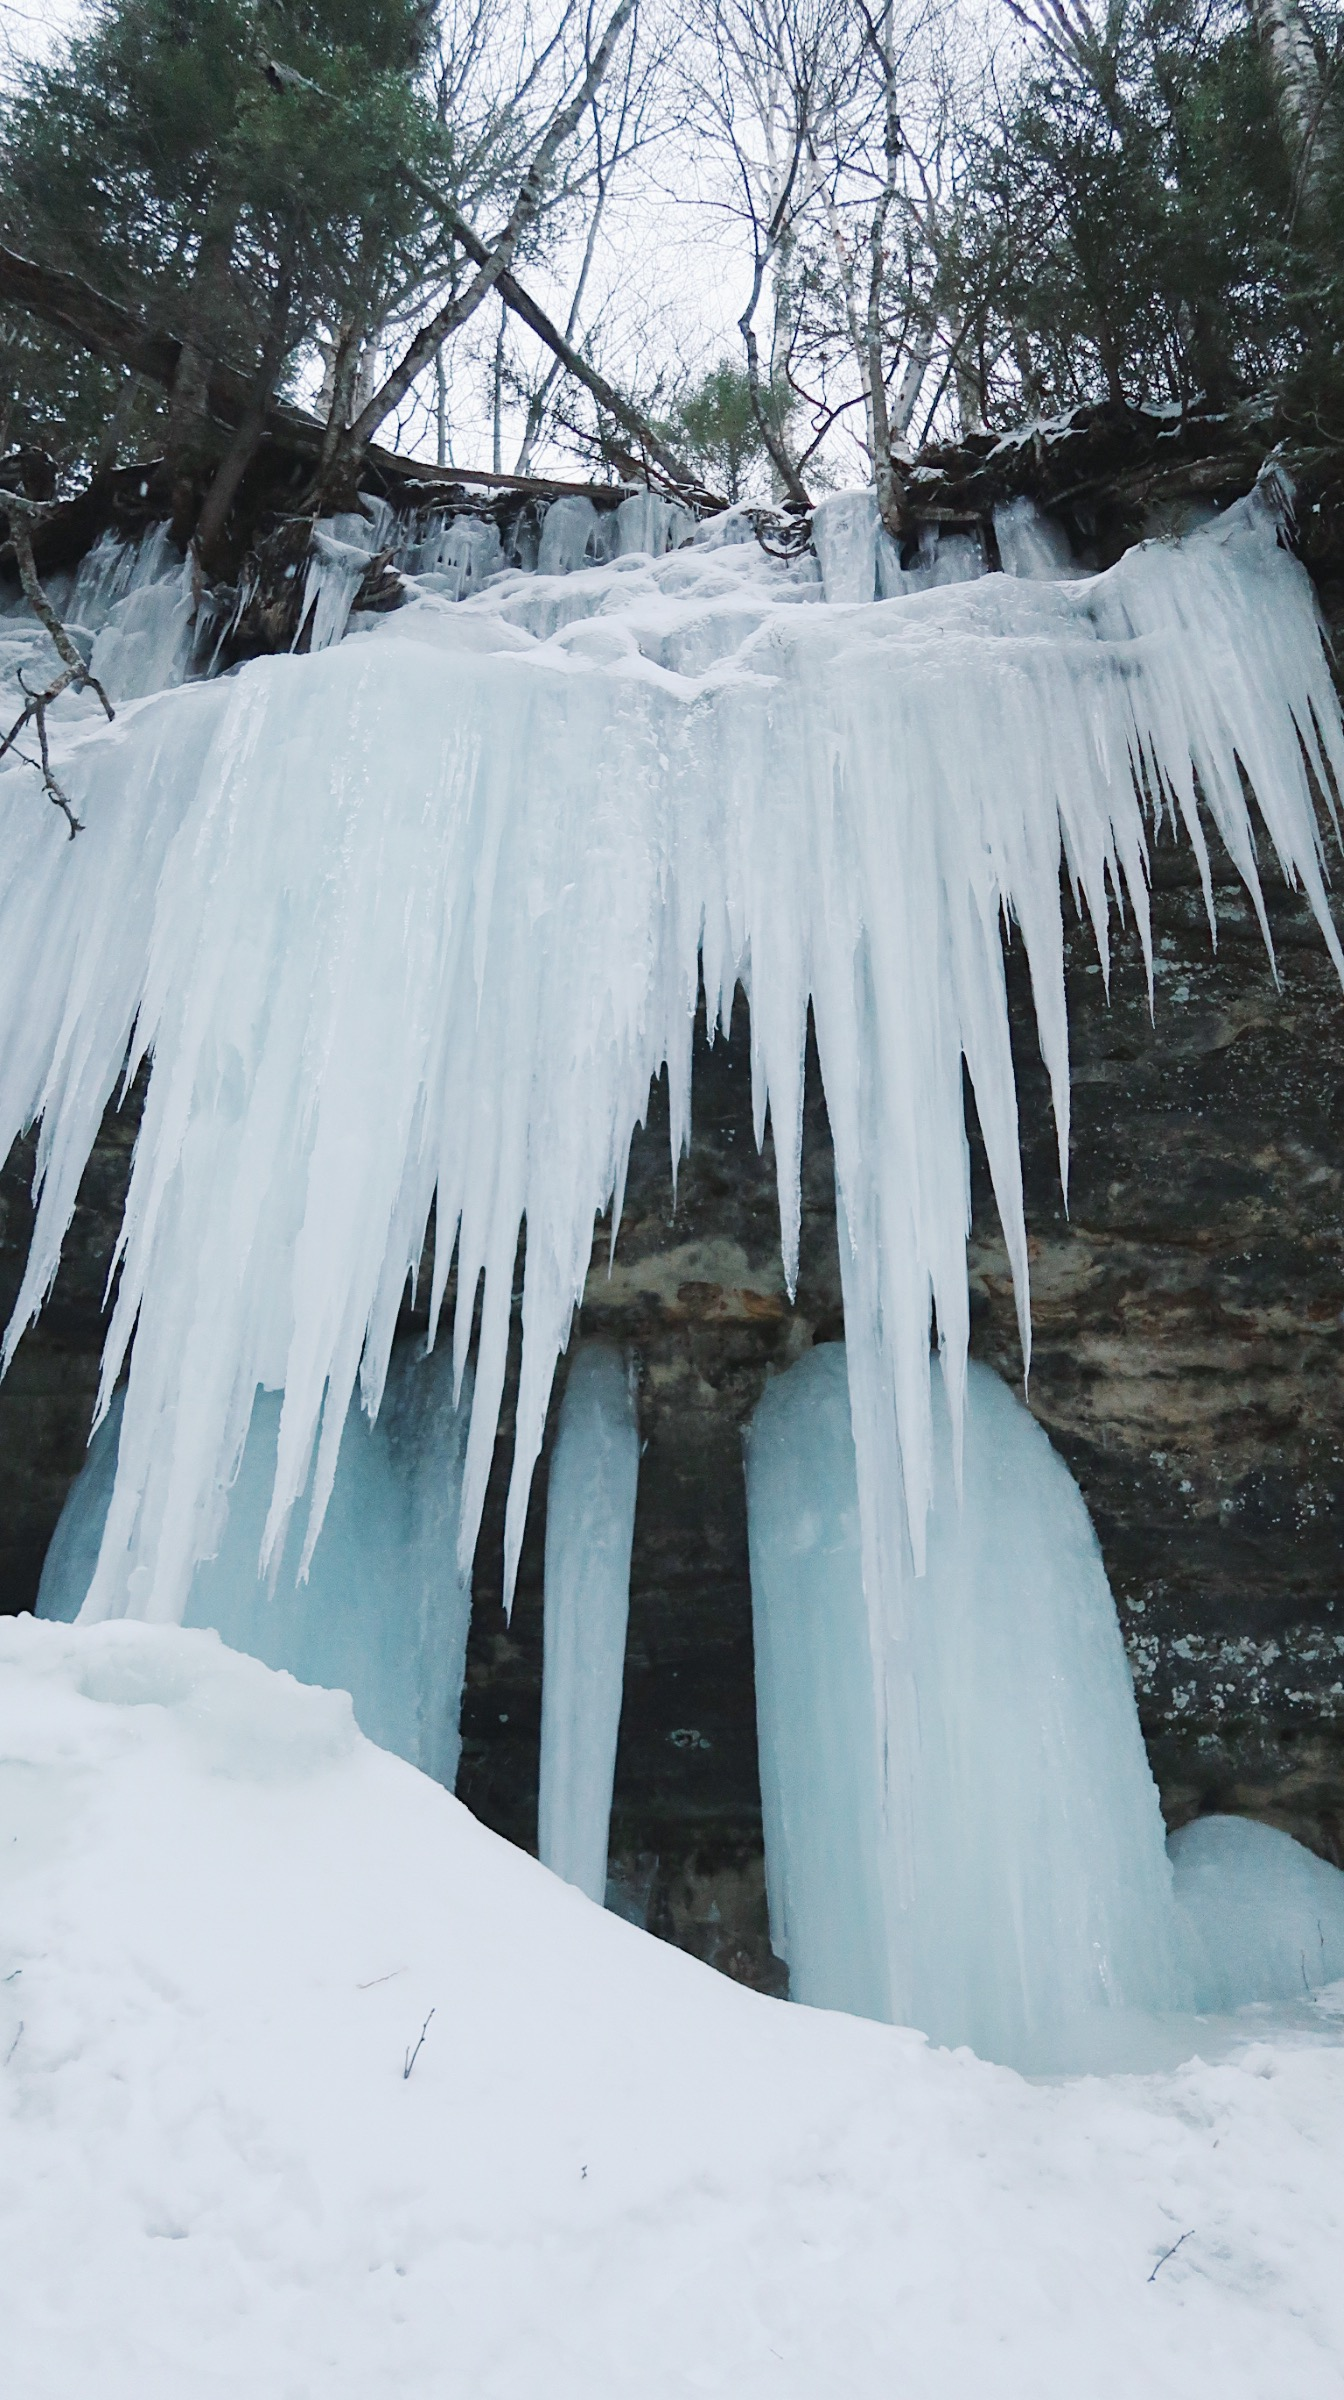 Ice Climbing At Pictured Rocks National Lakeshore A Winter Adventure You Ll Never Forget Em S On The Road